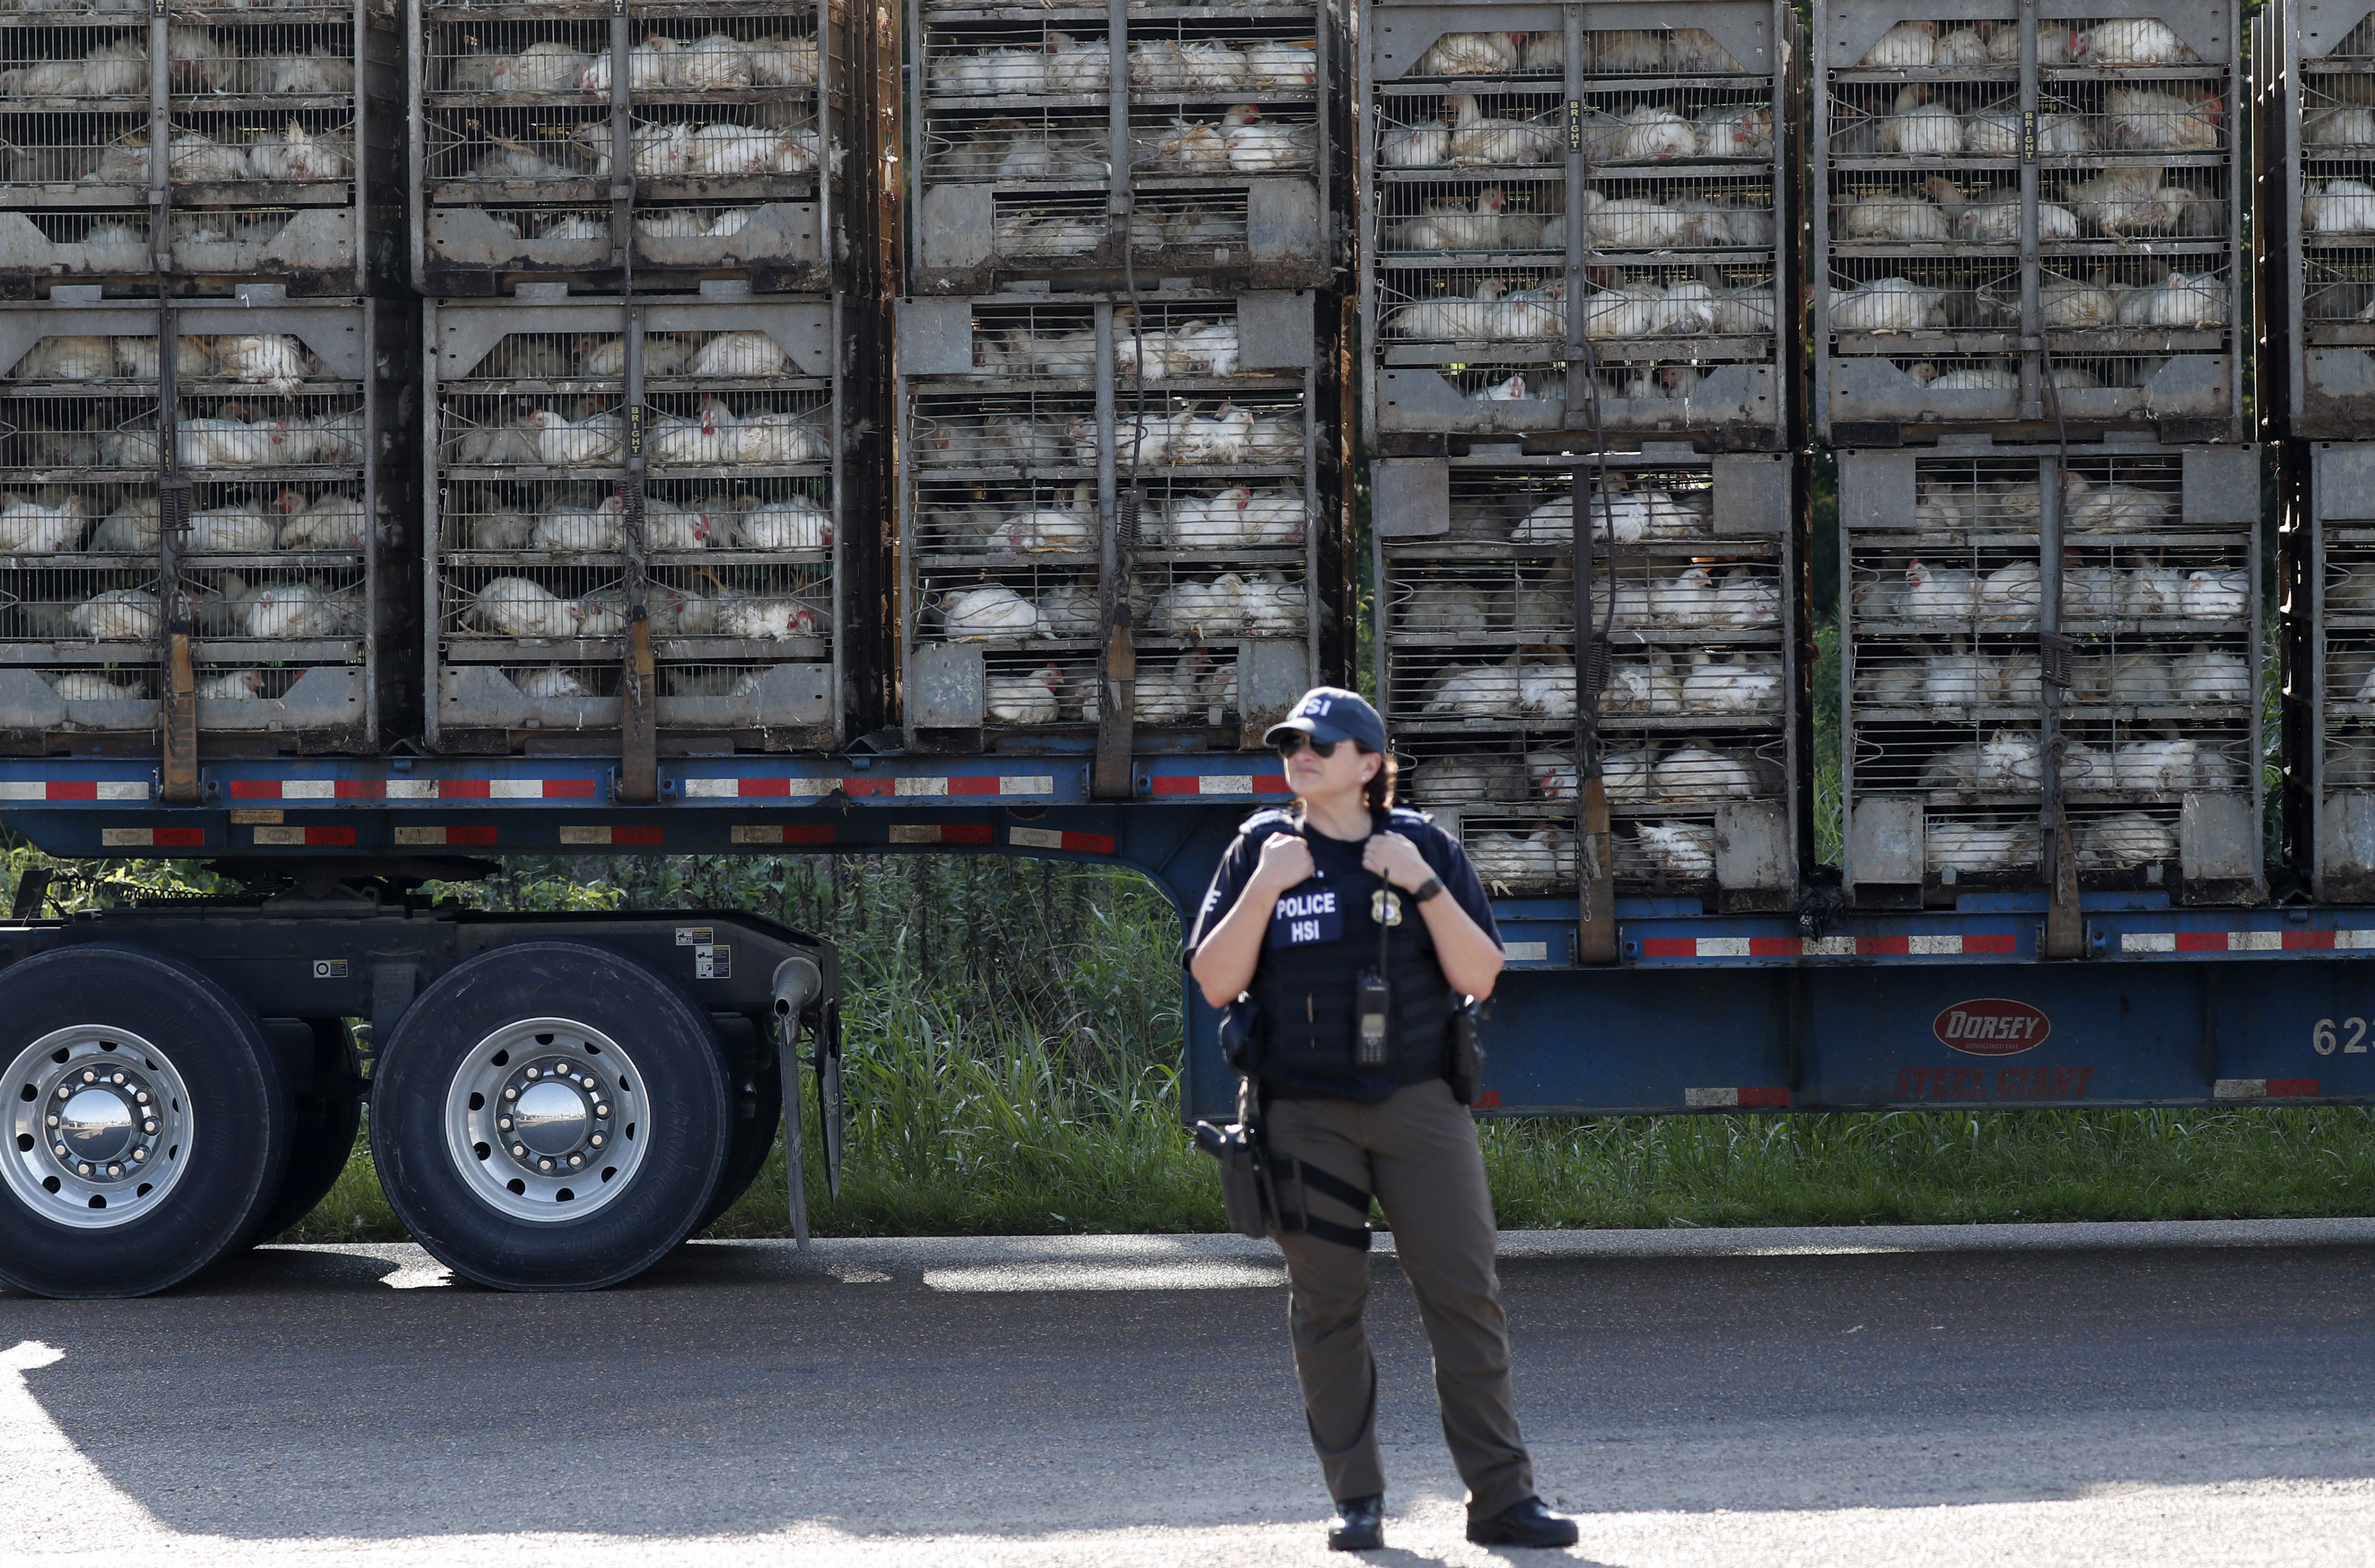 A trailer loaded with chickens passes a federal agent outside a Koch Foods Inc., plant in Morton, Miss. Wednesday, Aug. 7, 2019. U.S. immigration officials raided several Mississippi food processing plants on Wednesday and signaled that the early-morning strikes were part of a large-scale operation targeting owners as well as employees.